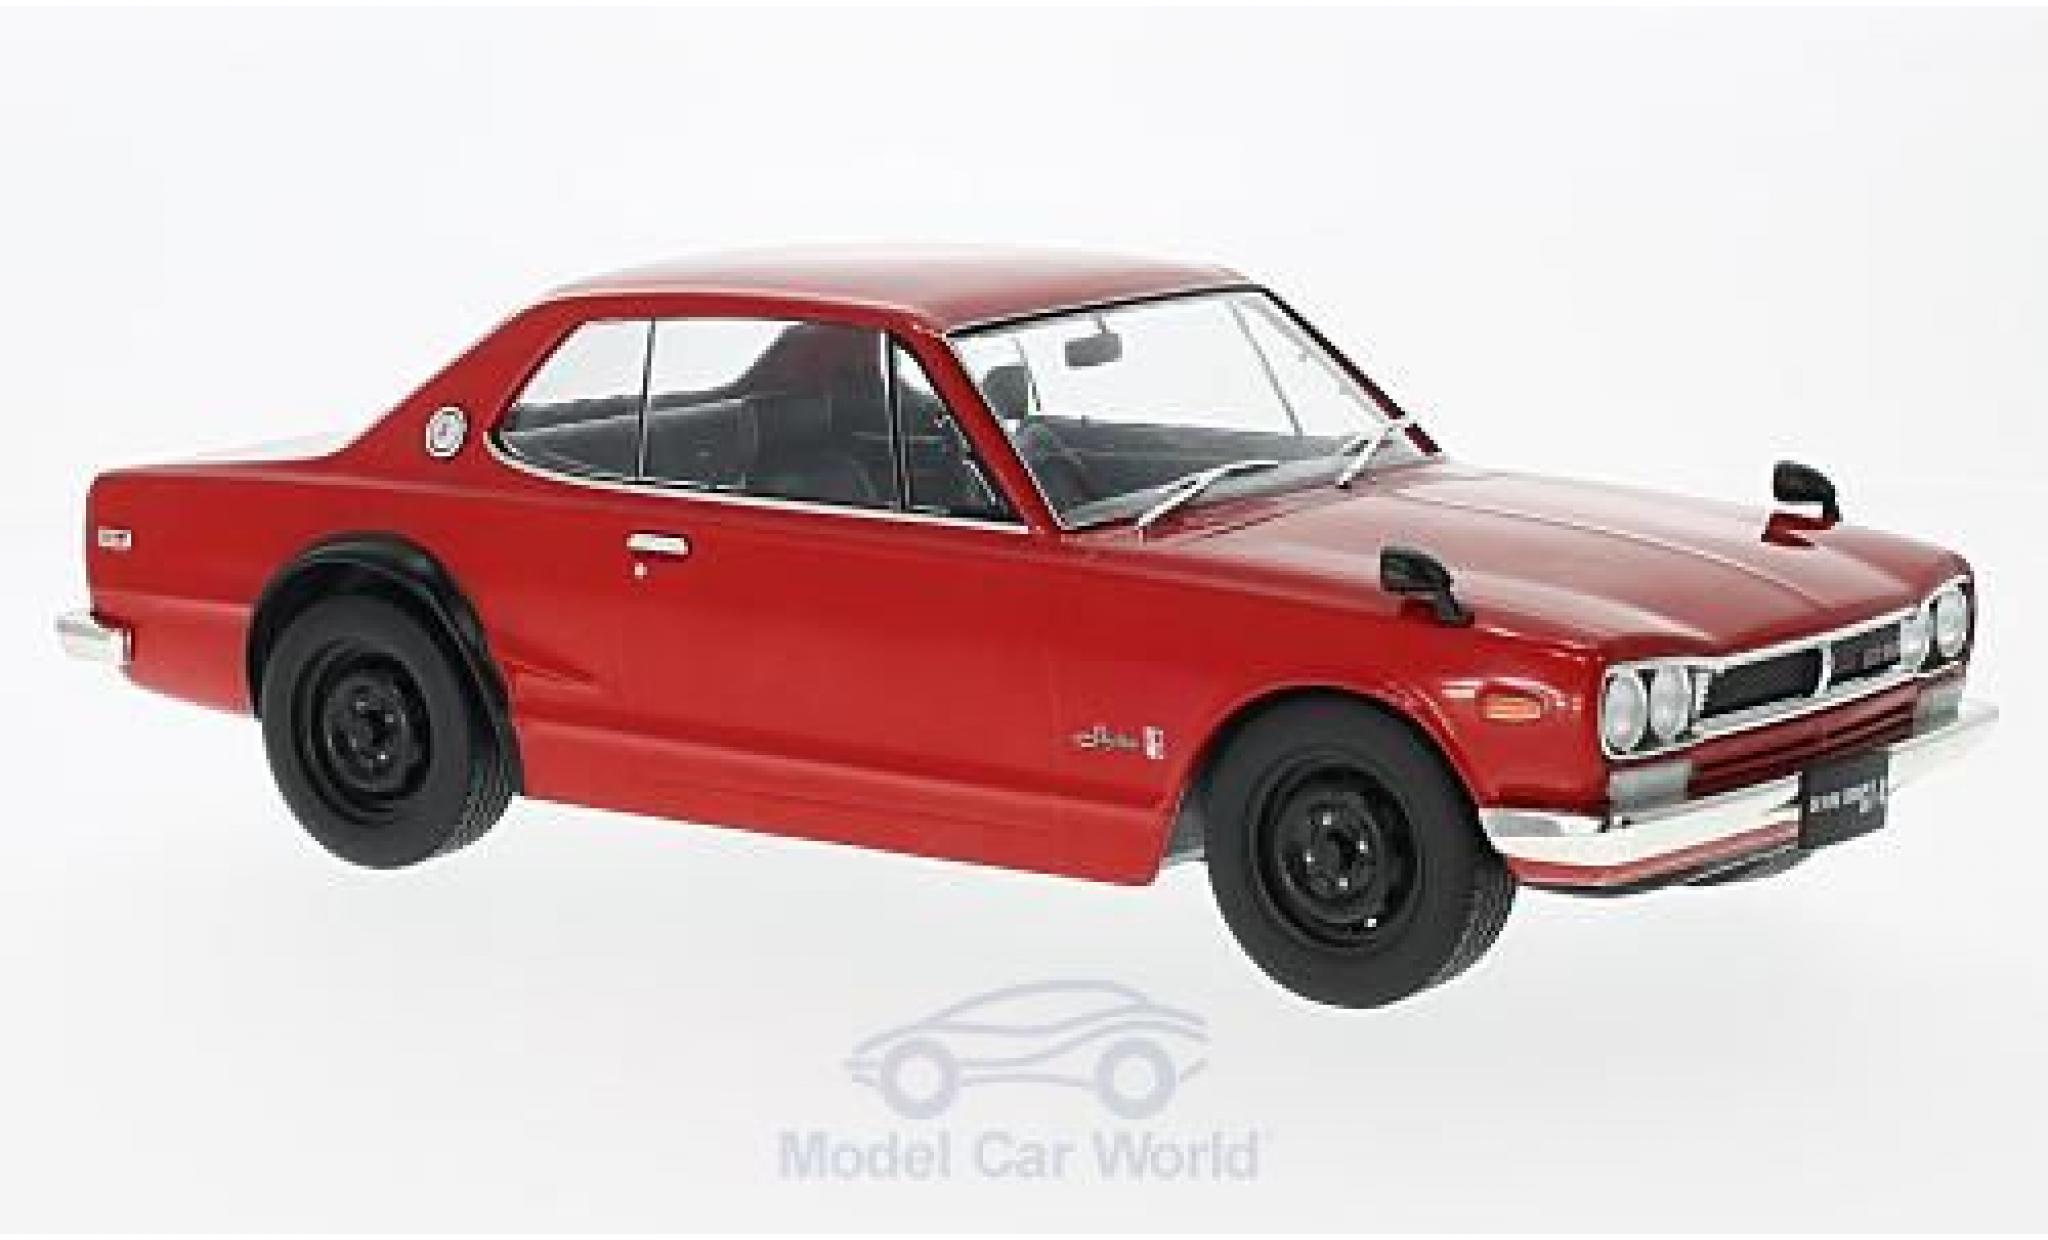 Nissan Skyline 1/18 Triple 9 Collection GT-R KPGC10 red RHD